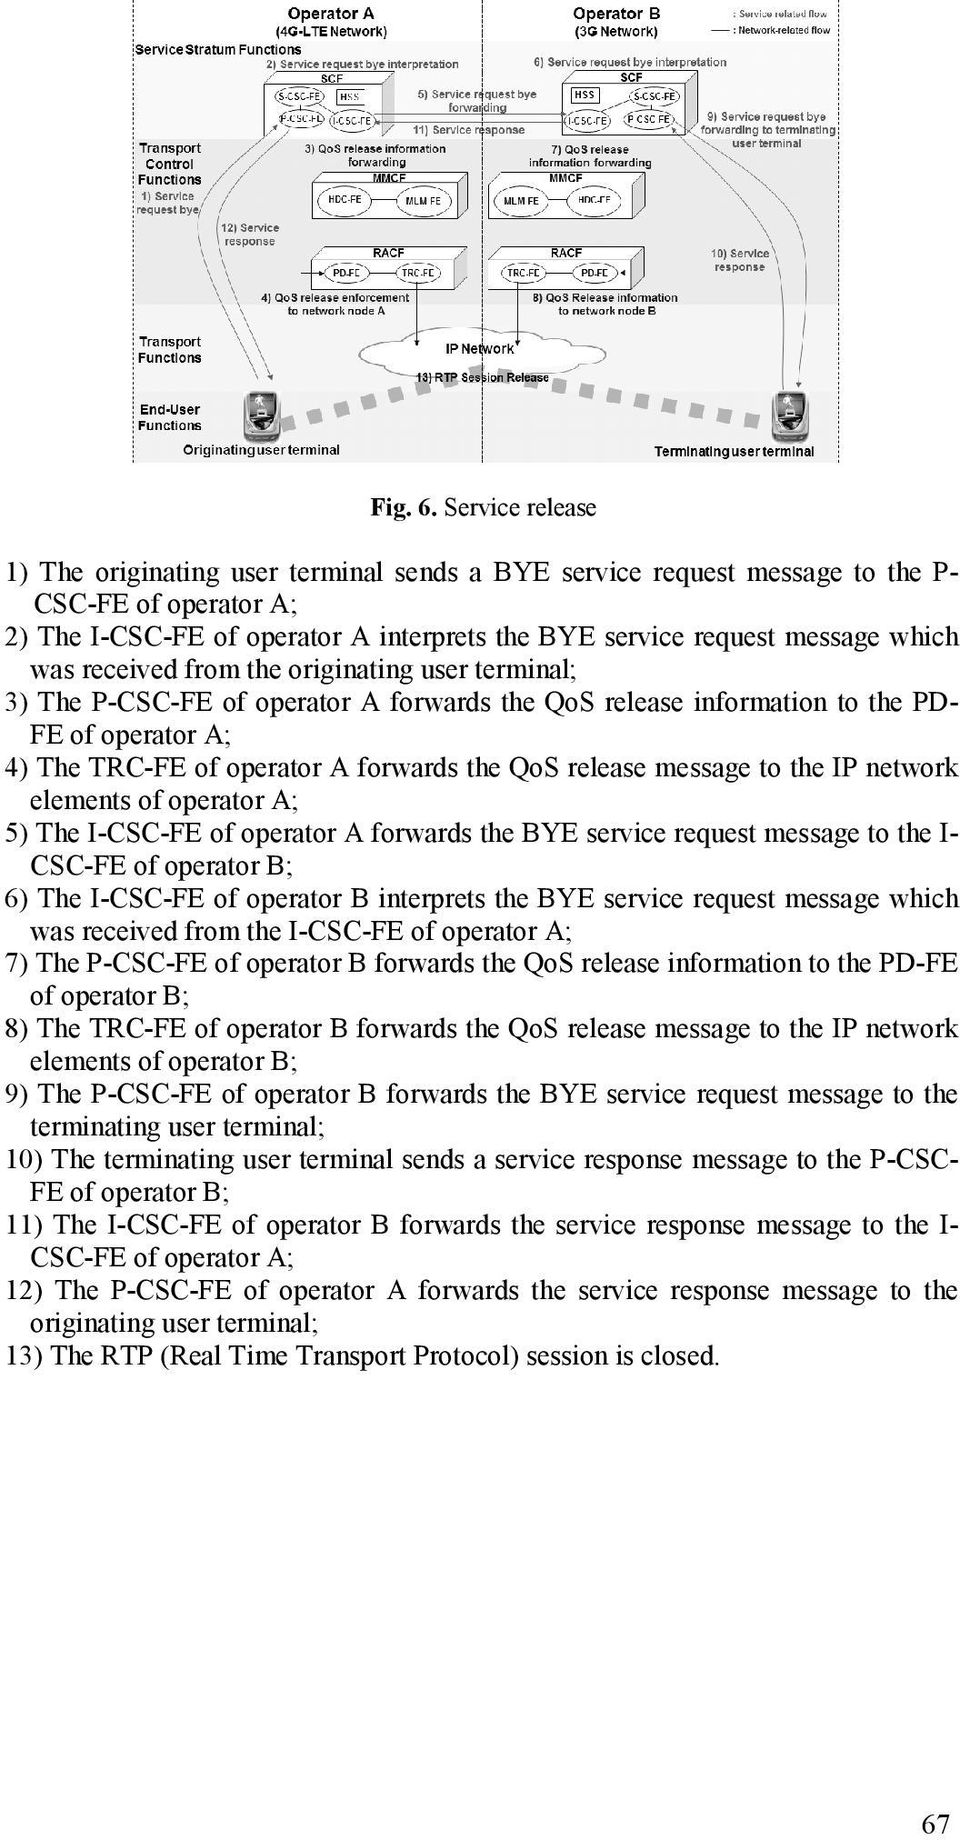 received from the originating user terminal; 3) The P-CSC-FE of operator A forwards the QoS release information to the PD- FE of operator A; 4) The TRC-FE of operator A forwards the QoS release